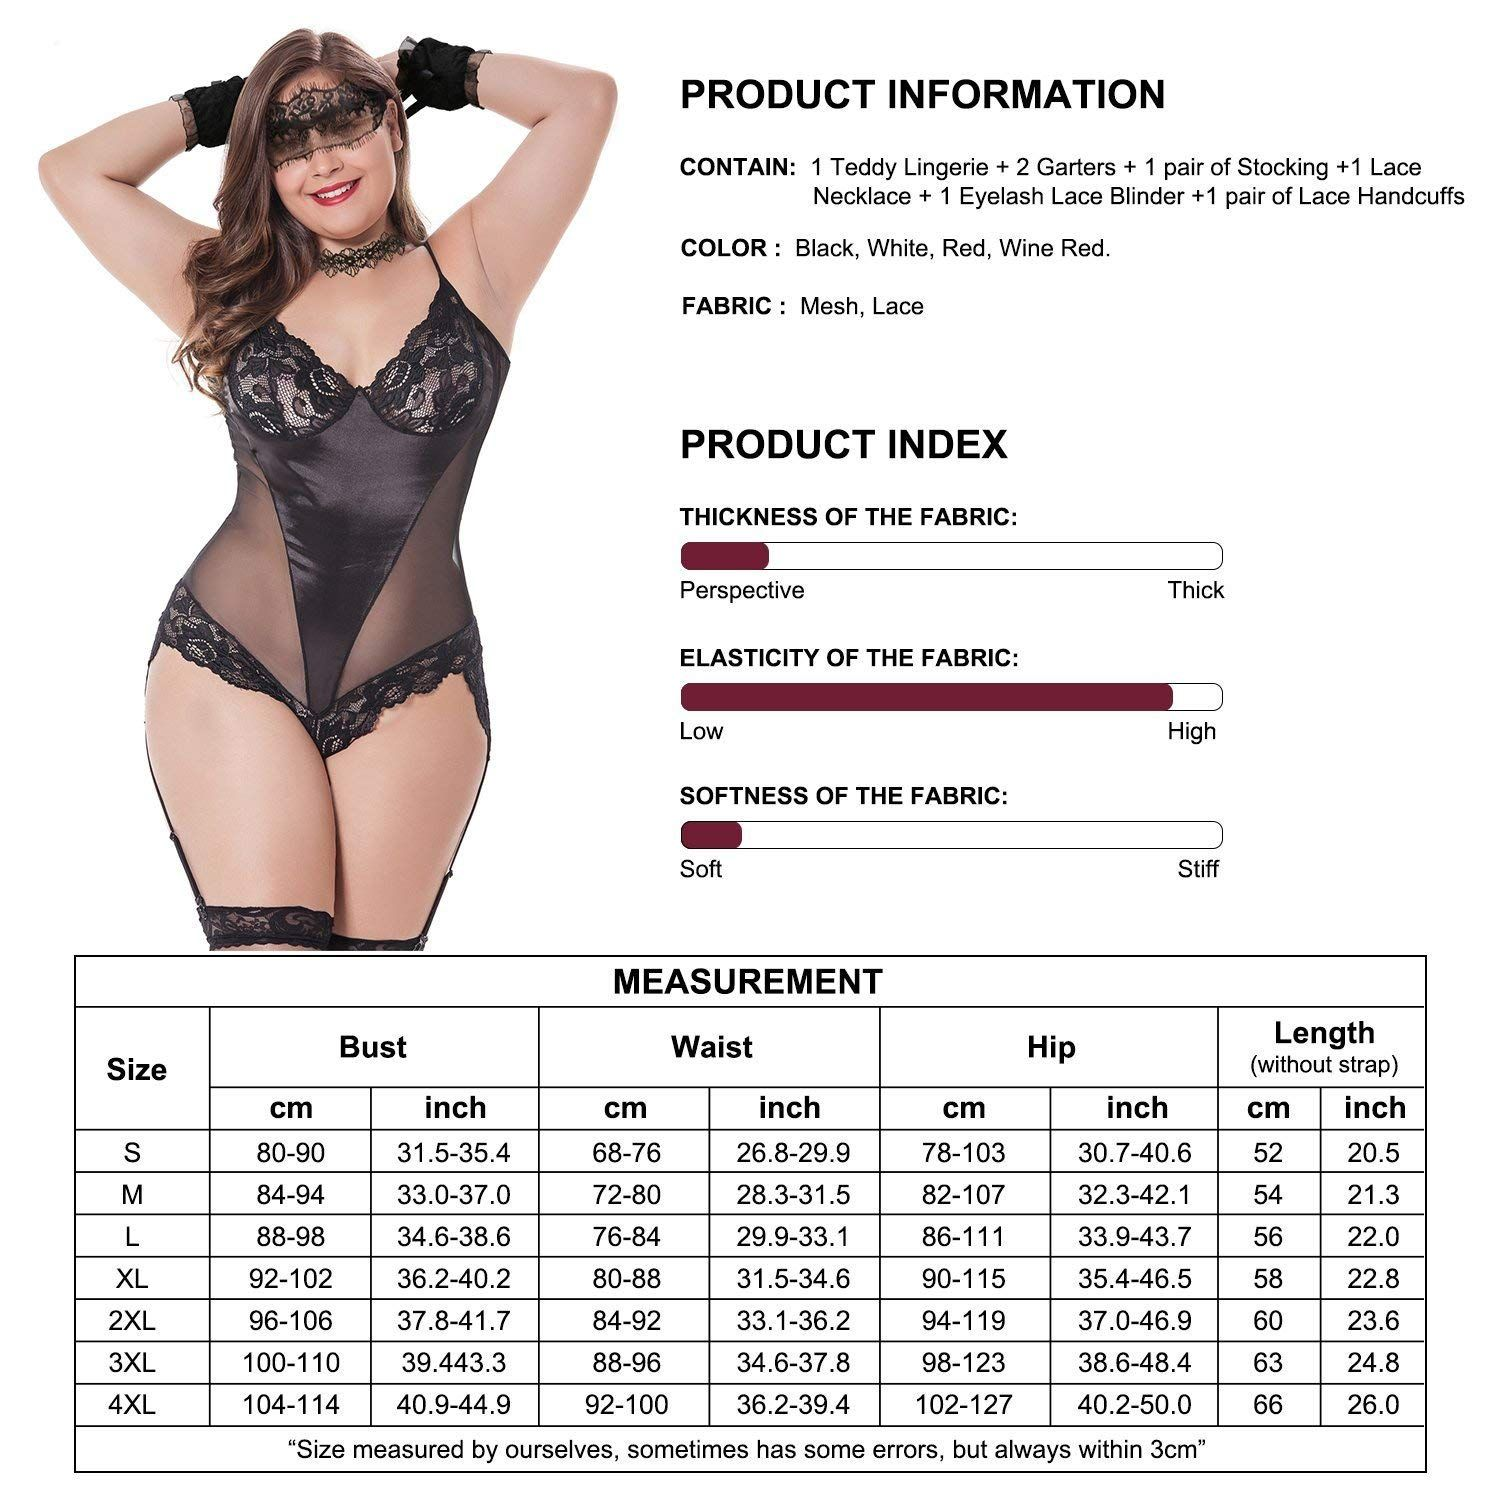 e203882caa68f Sexy Women's Lingerie Set Plus Size – Includes Garter, Stockings and Lace  Eye Mask Blindfold